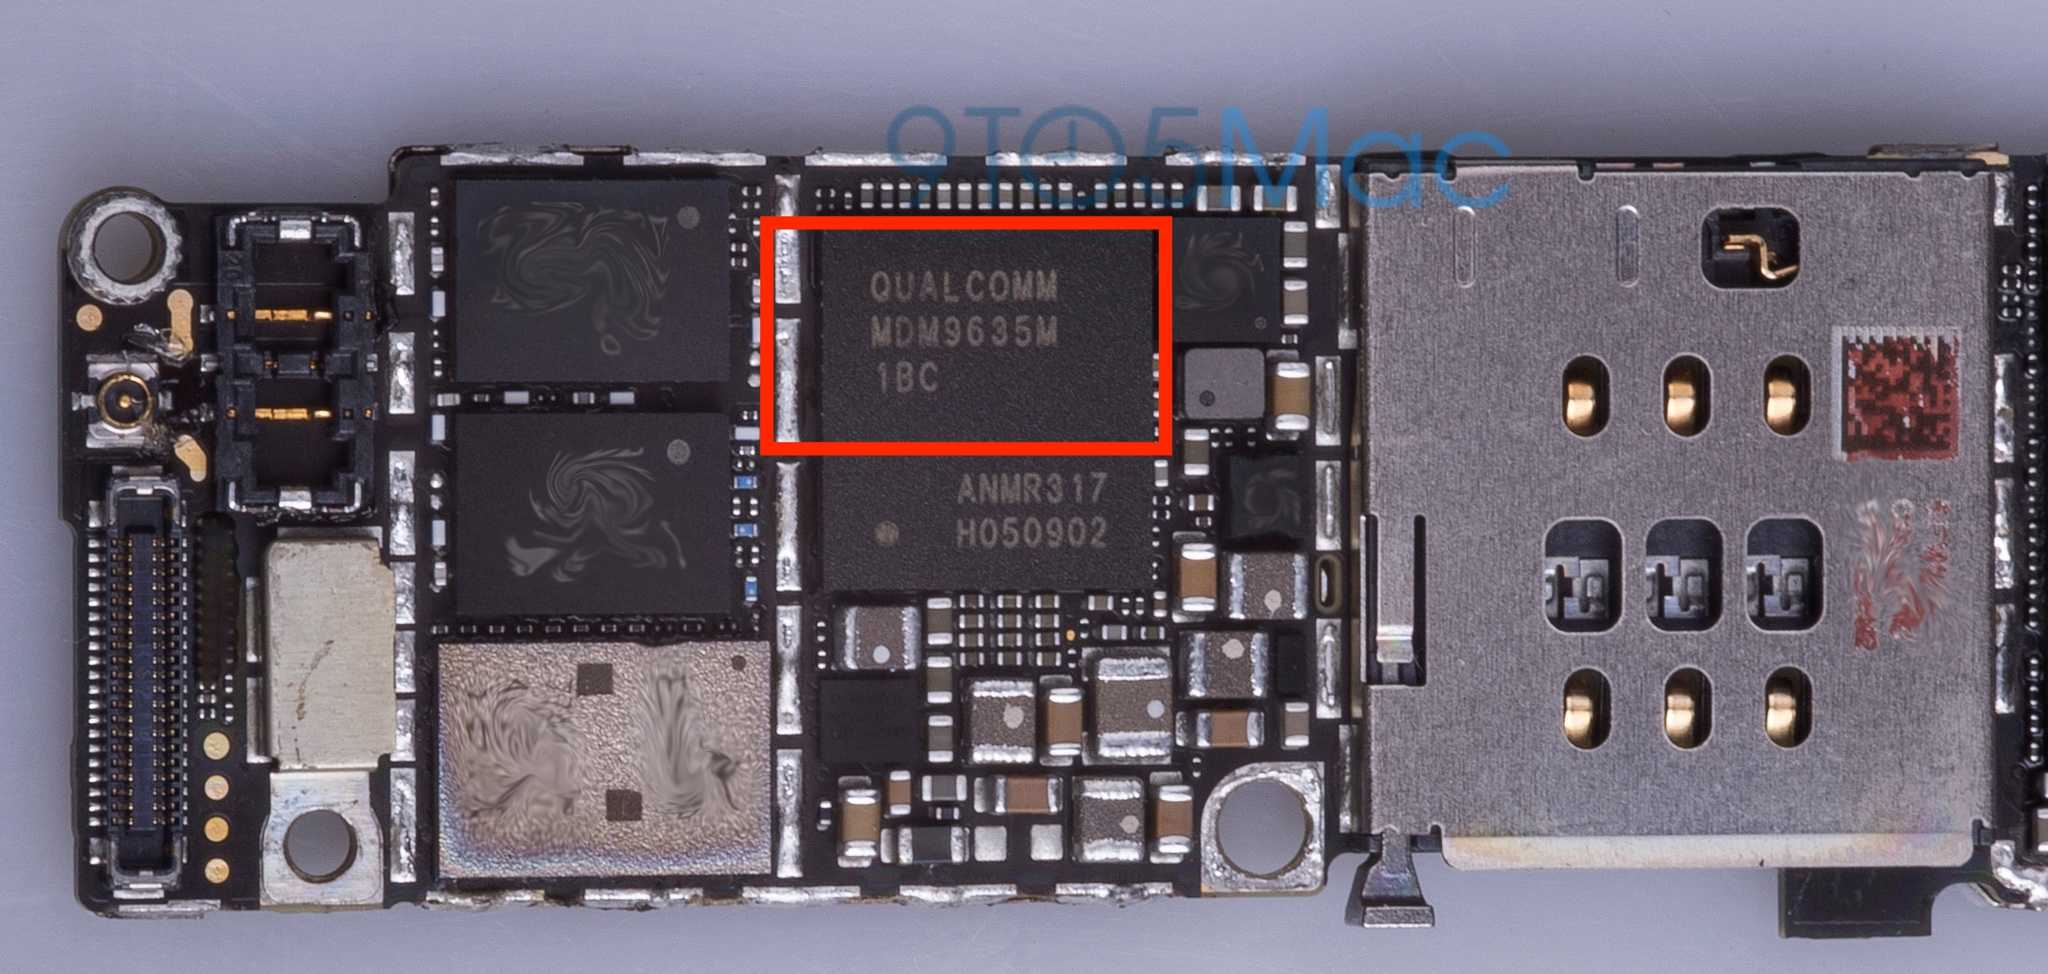 iPhone-6s-Qualcomm-MDM9625M-leak-001